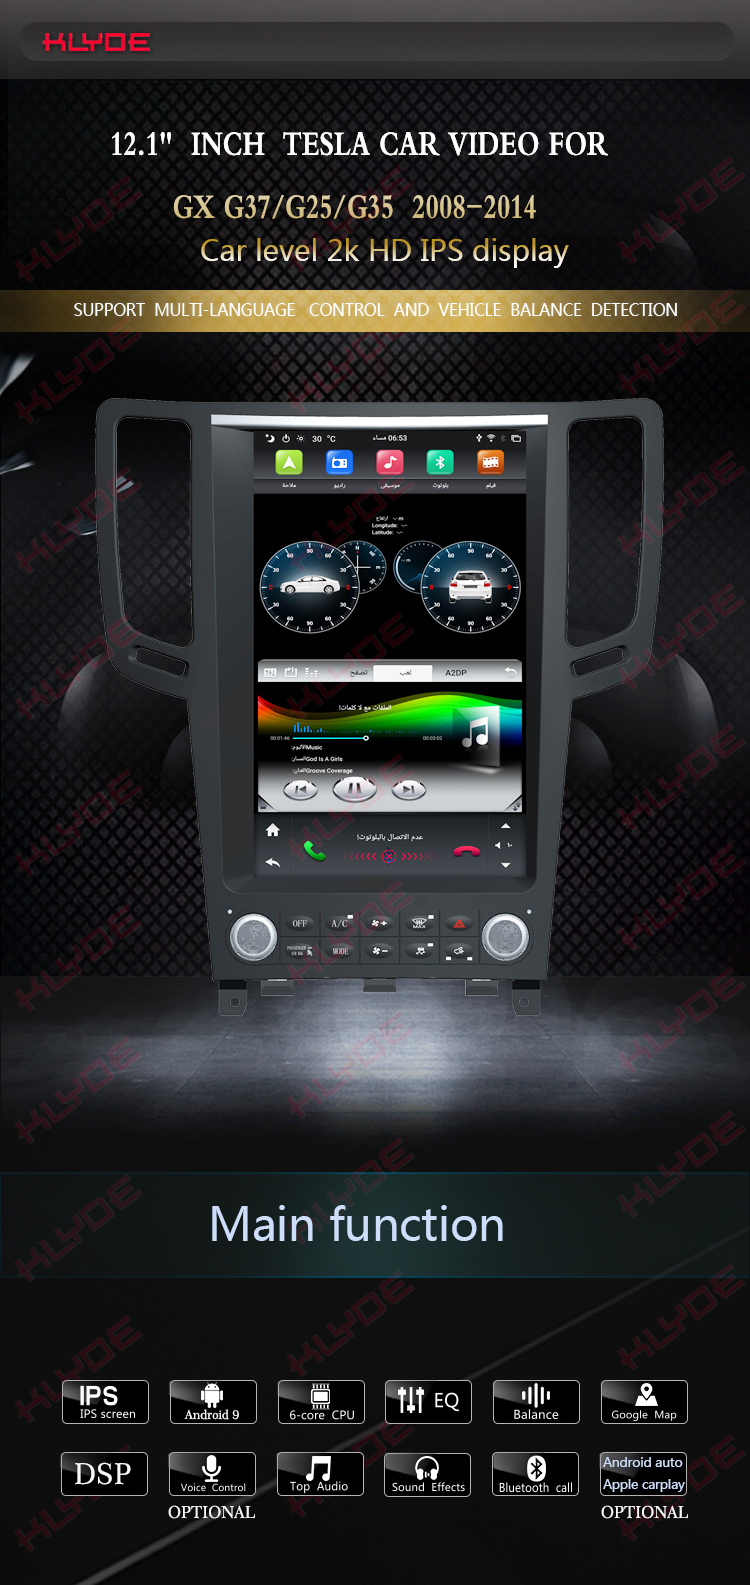 GX G37/G25/G35 2011 android car multimedia system